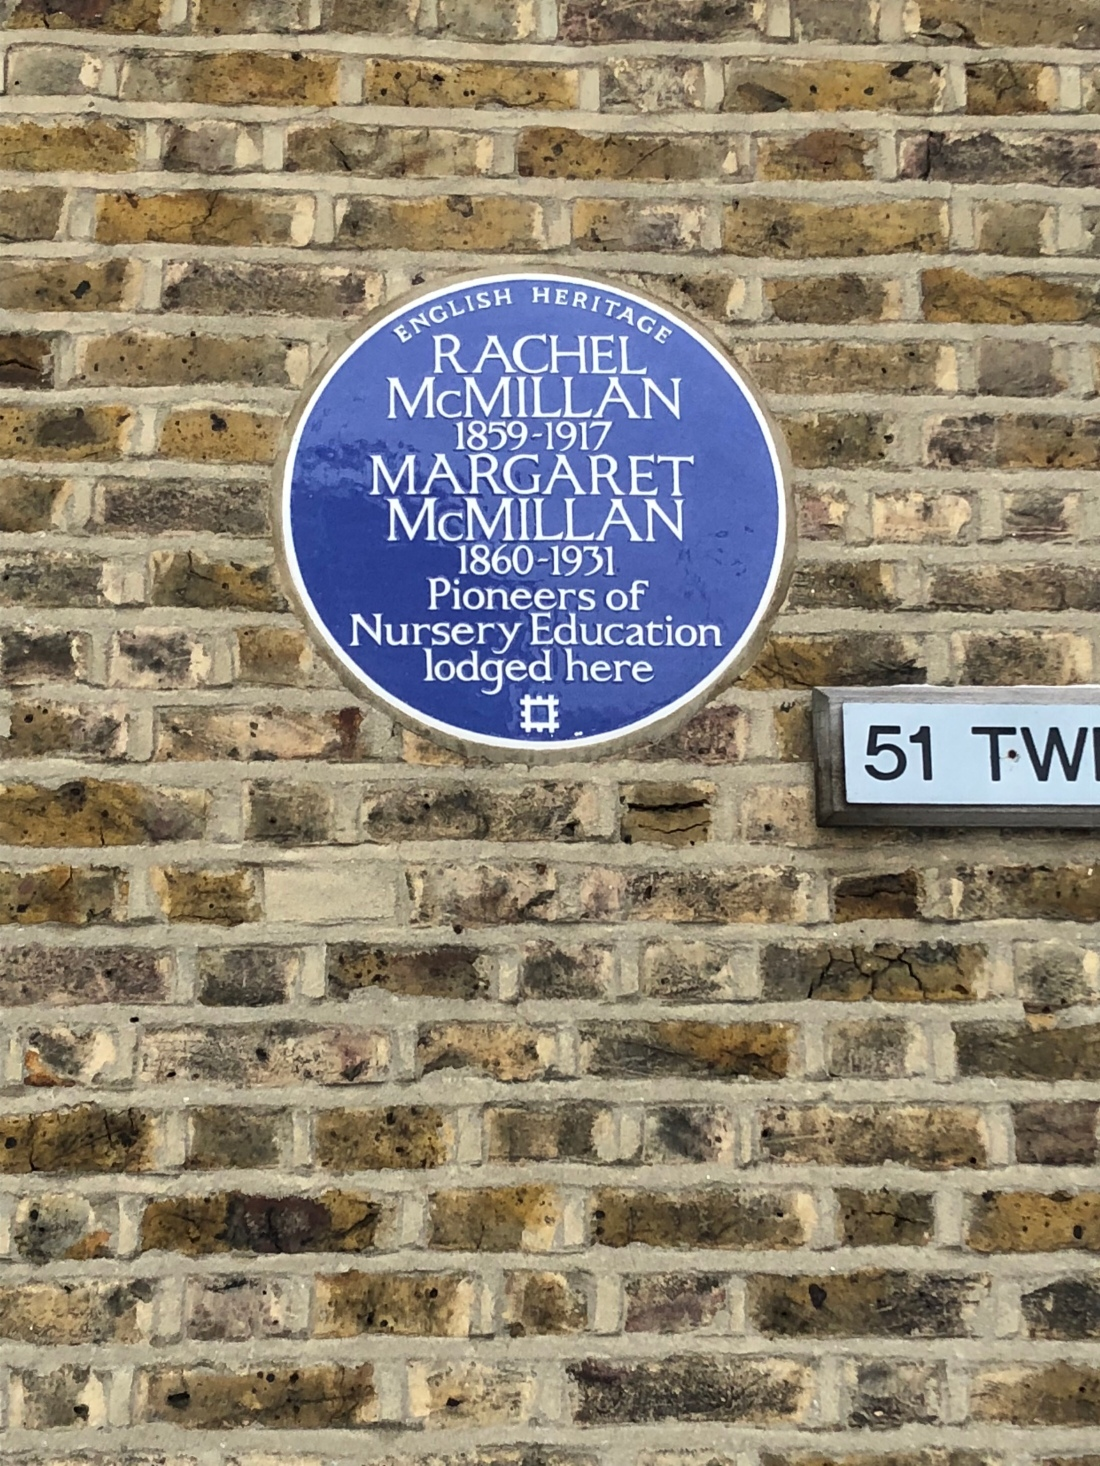 The McMillan sisters are commemorated with a blue plaque in Bromley